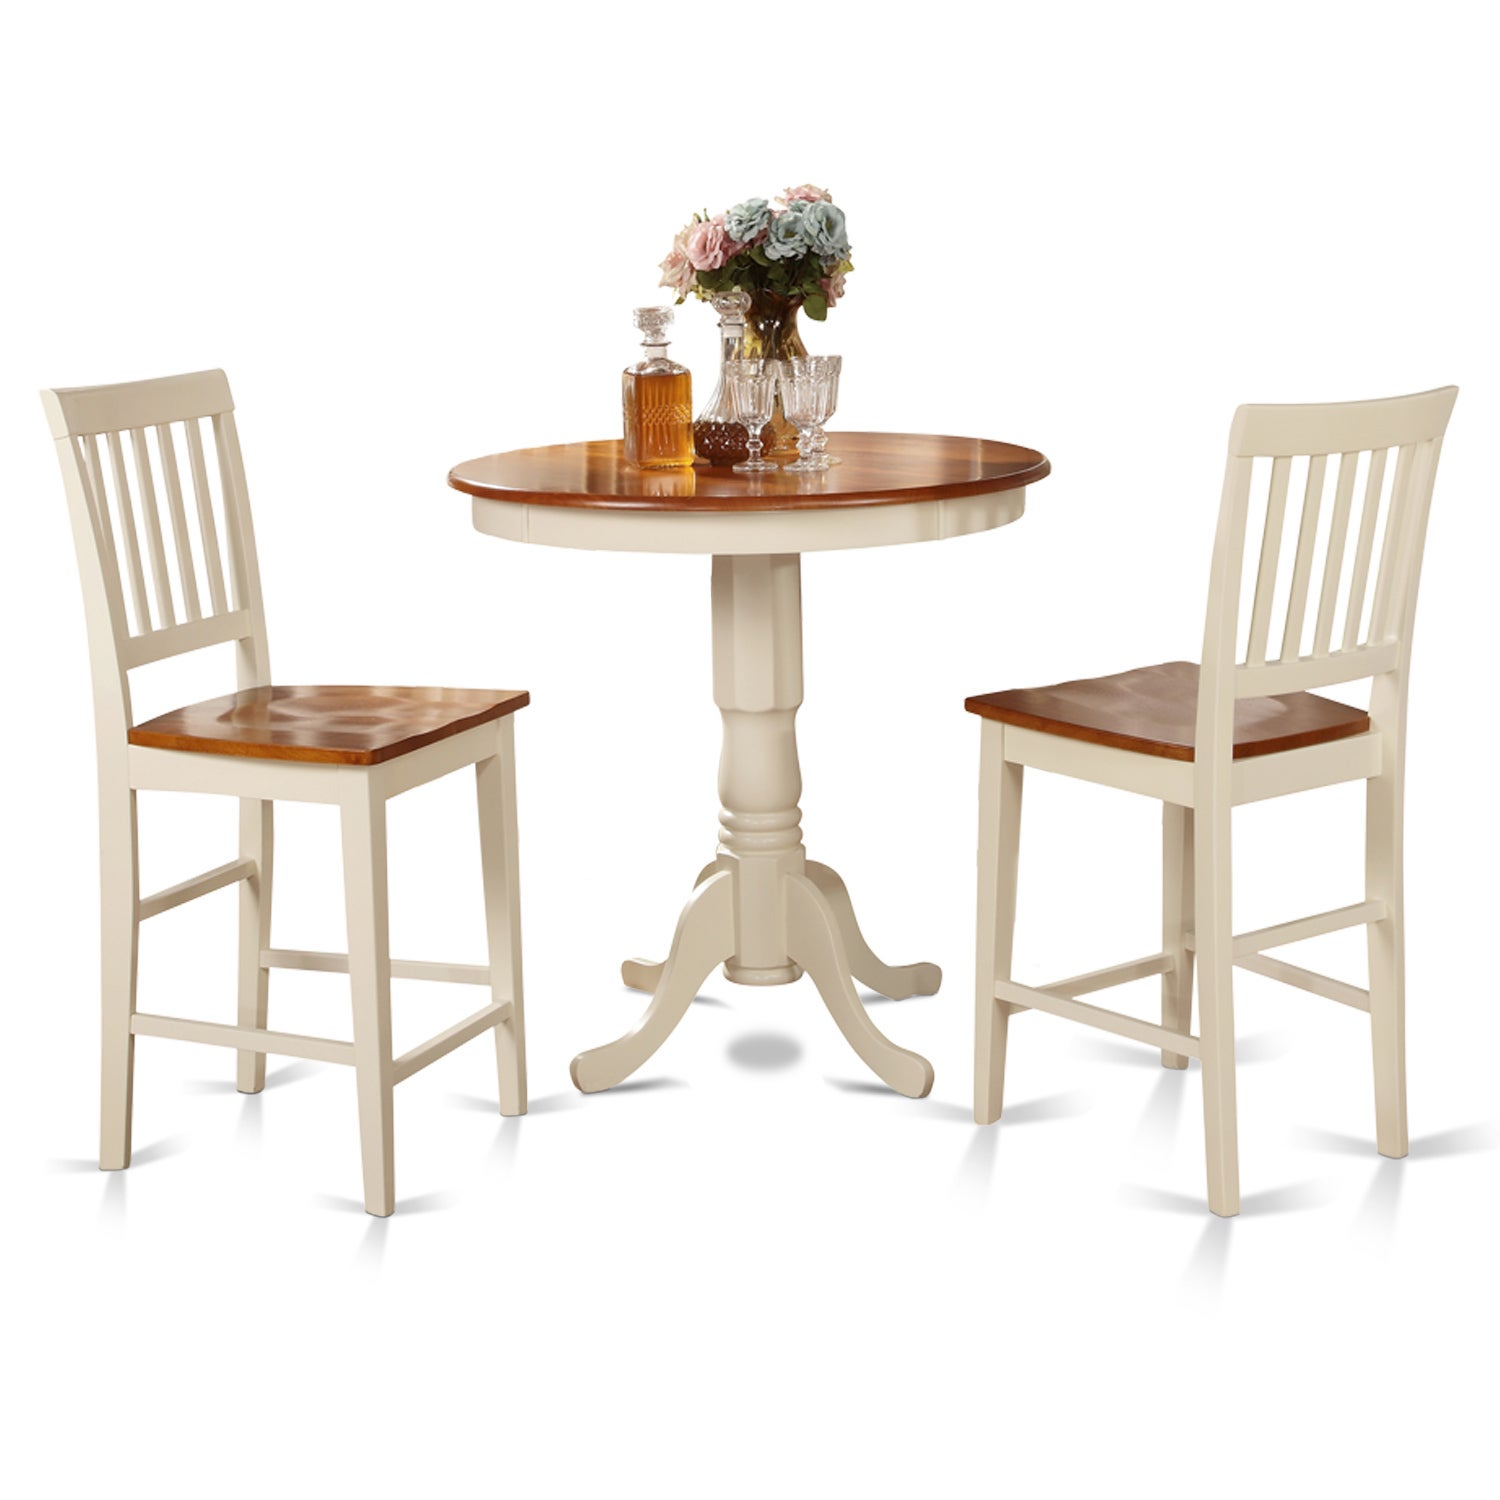 Counter Height White Kitchen Table : Buttermilk Counter Height Table and 2 Kitchen Chairs 3-piece Dining ...